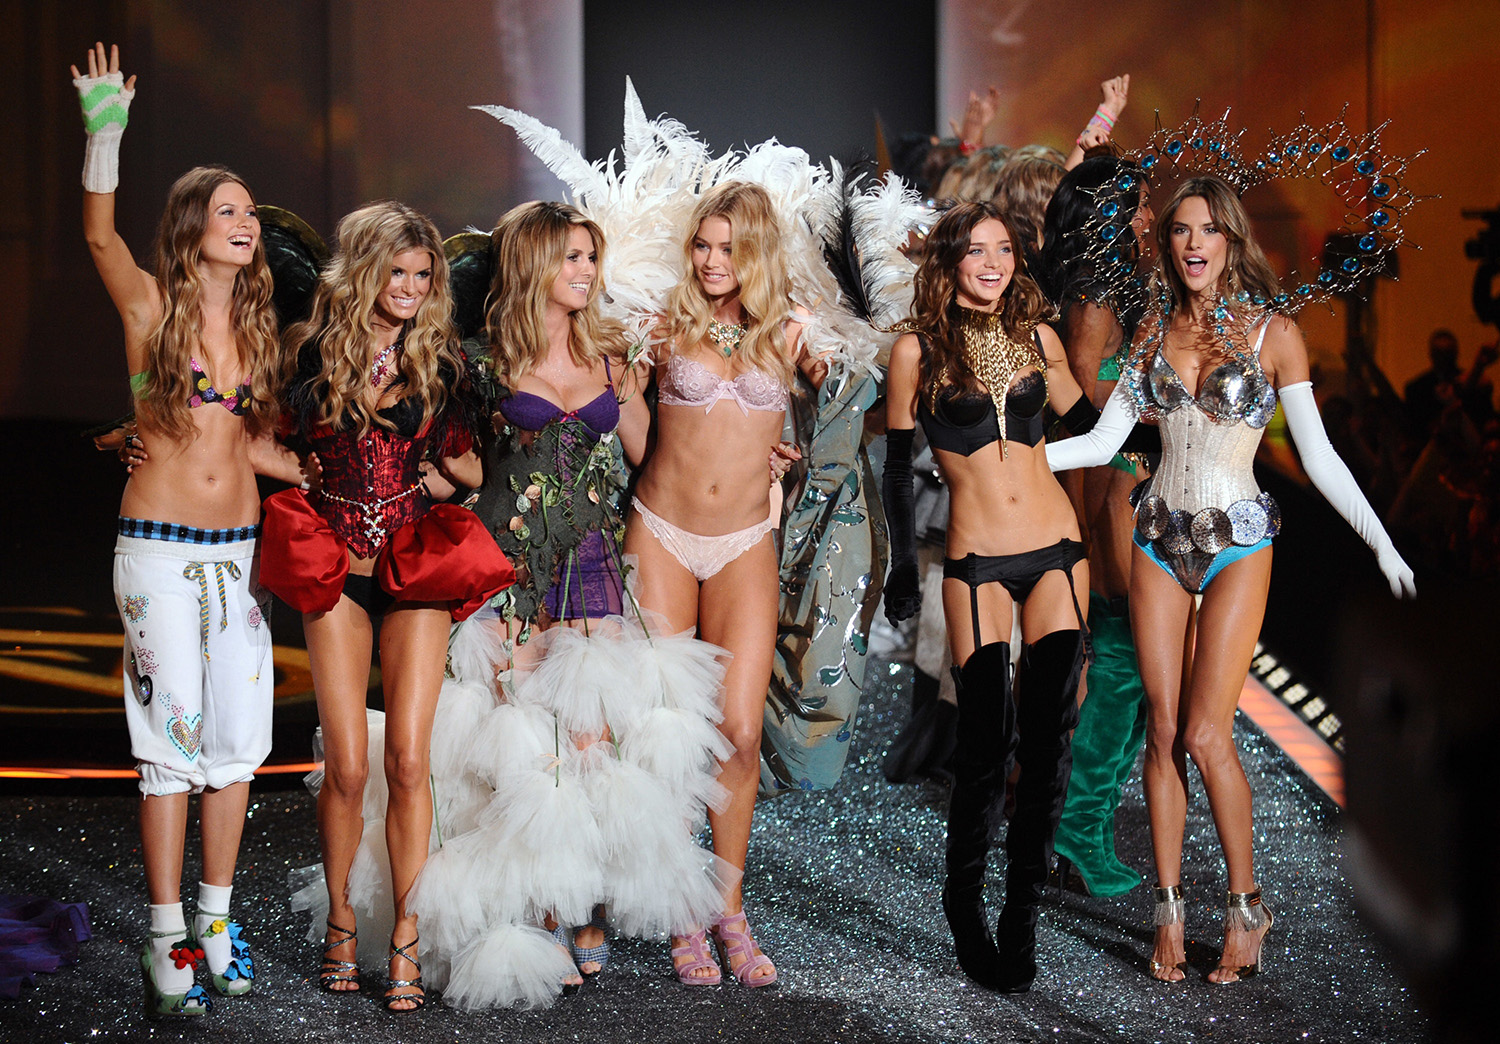 Victoria's Secret Fashion Show moments 1